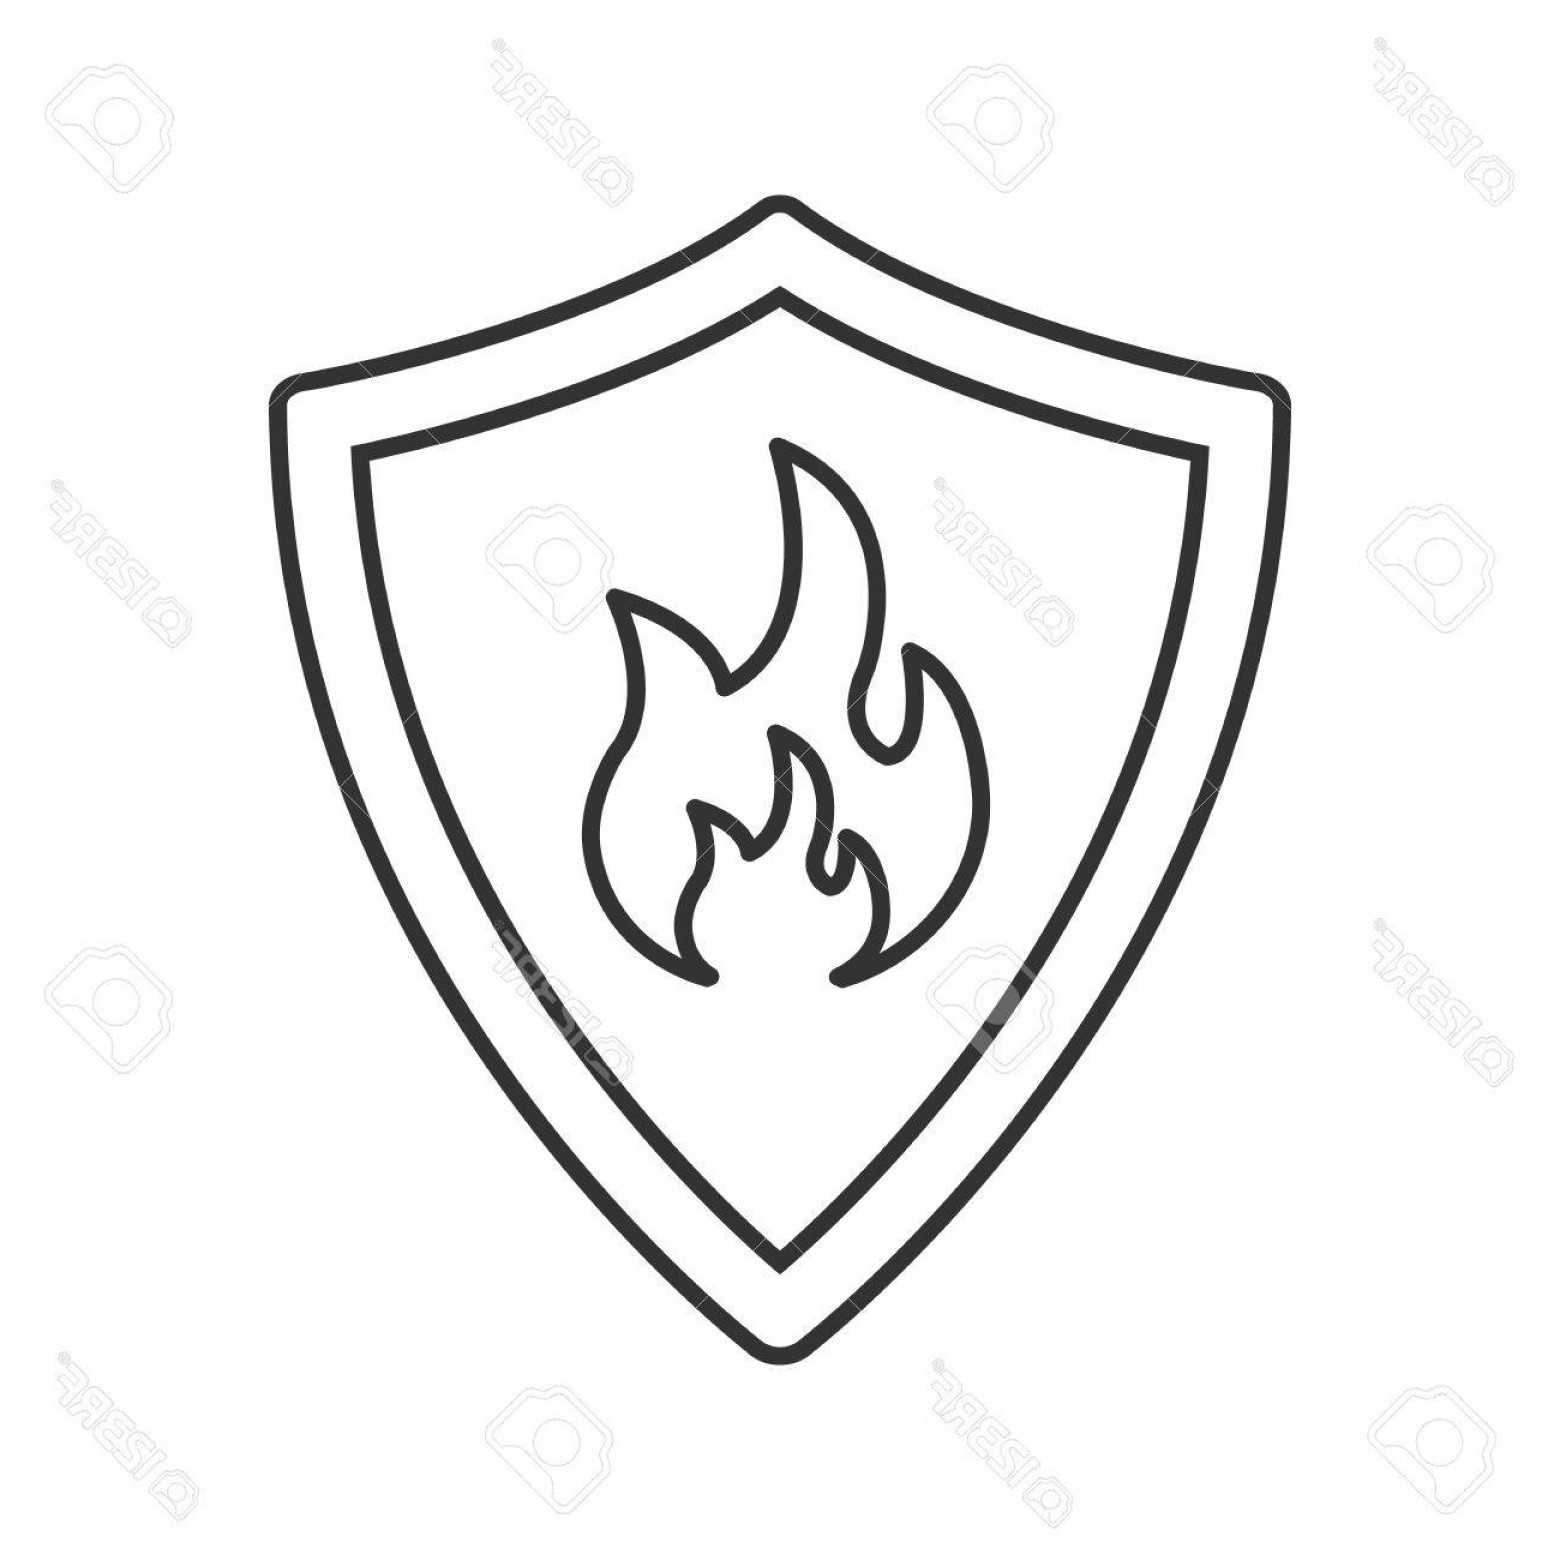 1560x1560 Firefighter Vector Shields Orangiausa